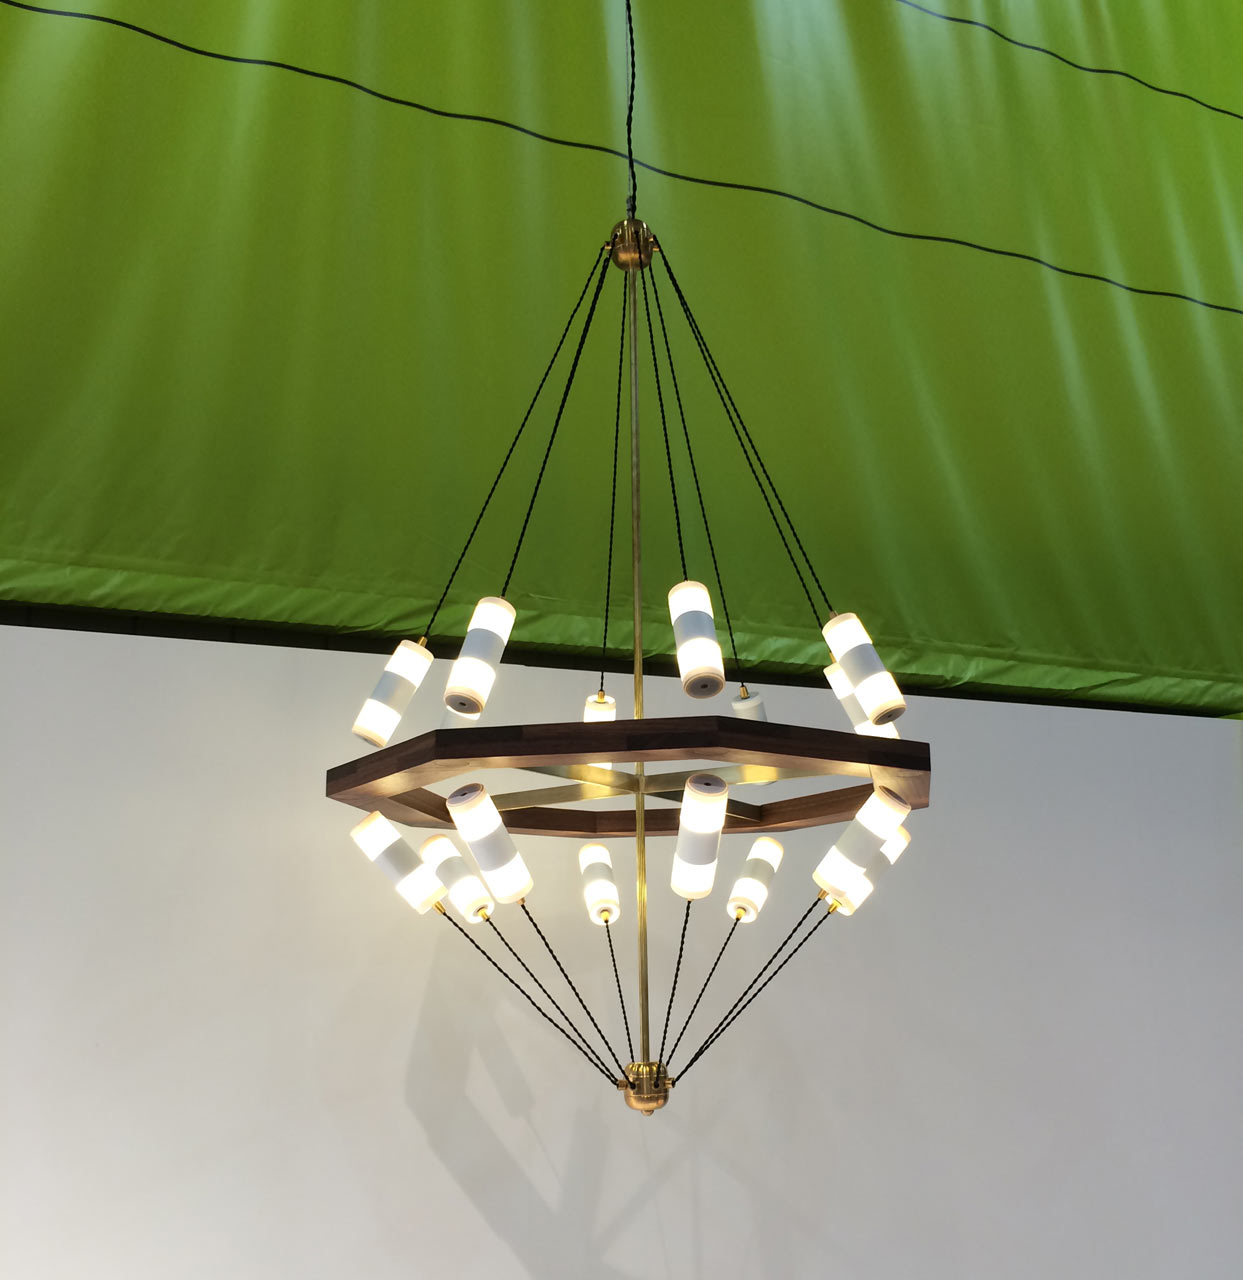 ICFF1-13-BOWER-Float-Chandelier